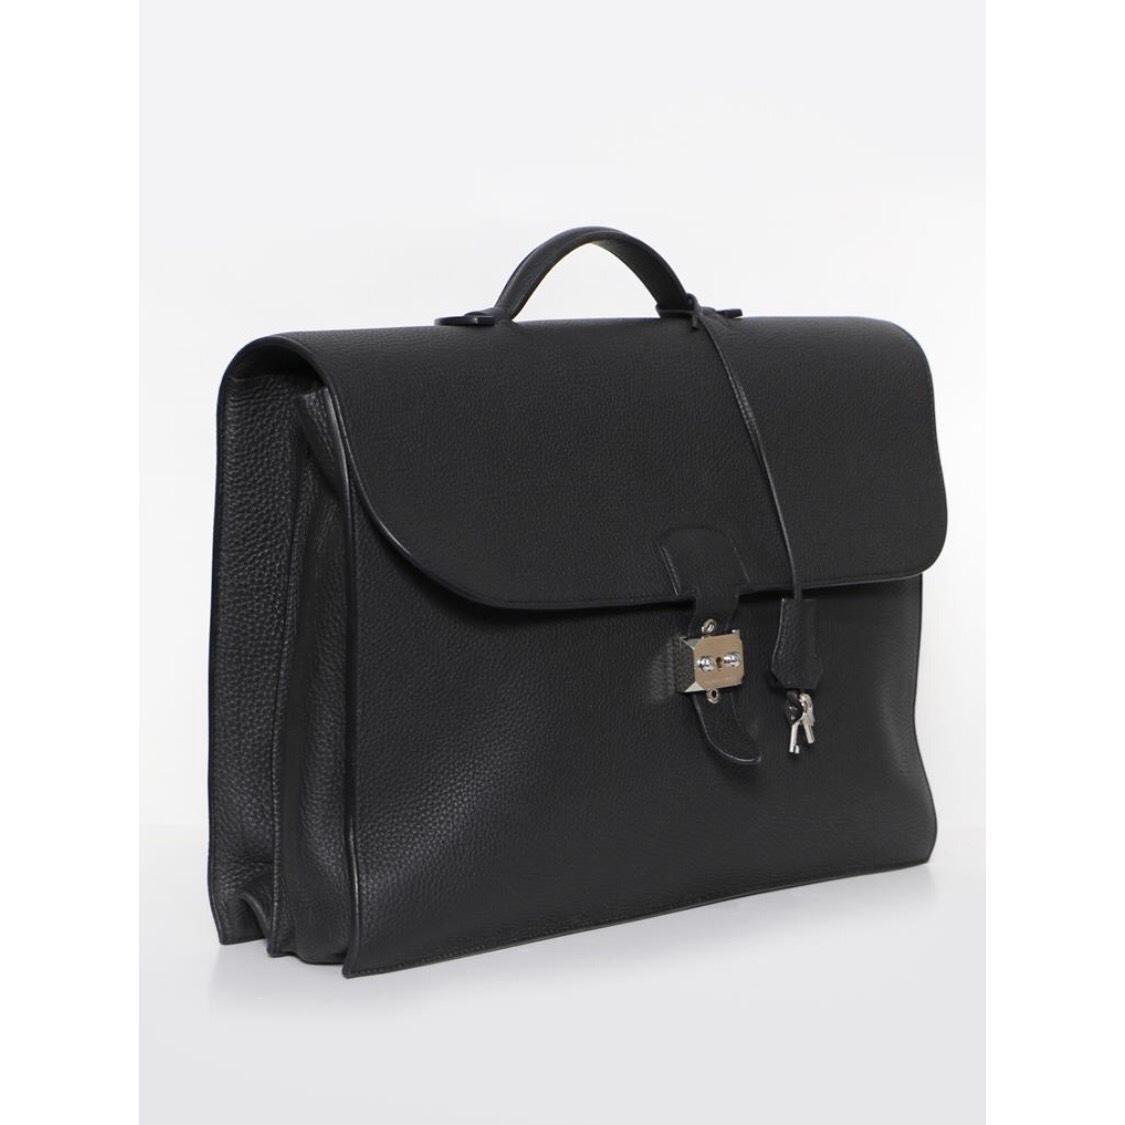 e971be72f113 ... hermes sac à dépêches briefcase bag reference guide spotted fashion  c724e b6567 sale hermès sac a depeches 41 briefcase grey leather satchel  tradesy ...